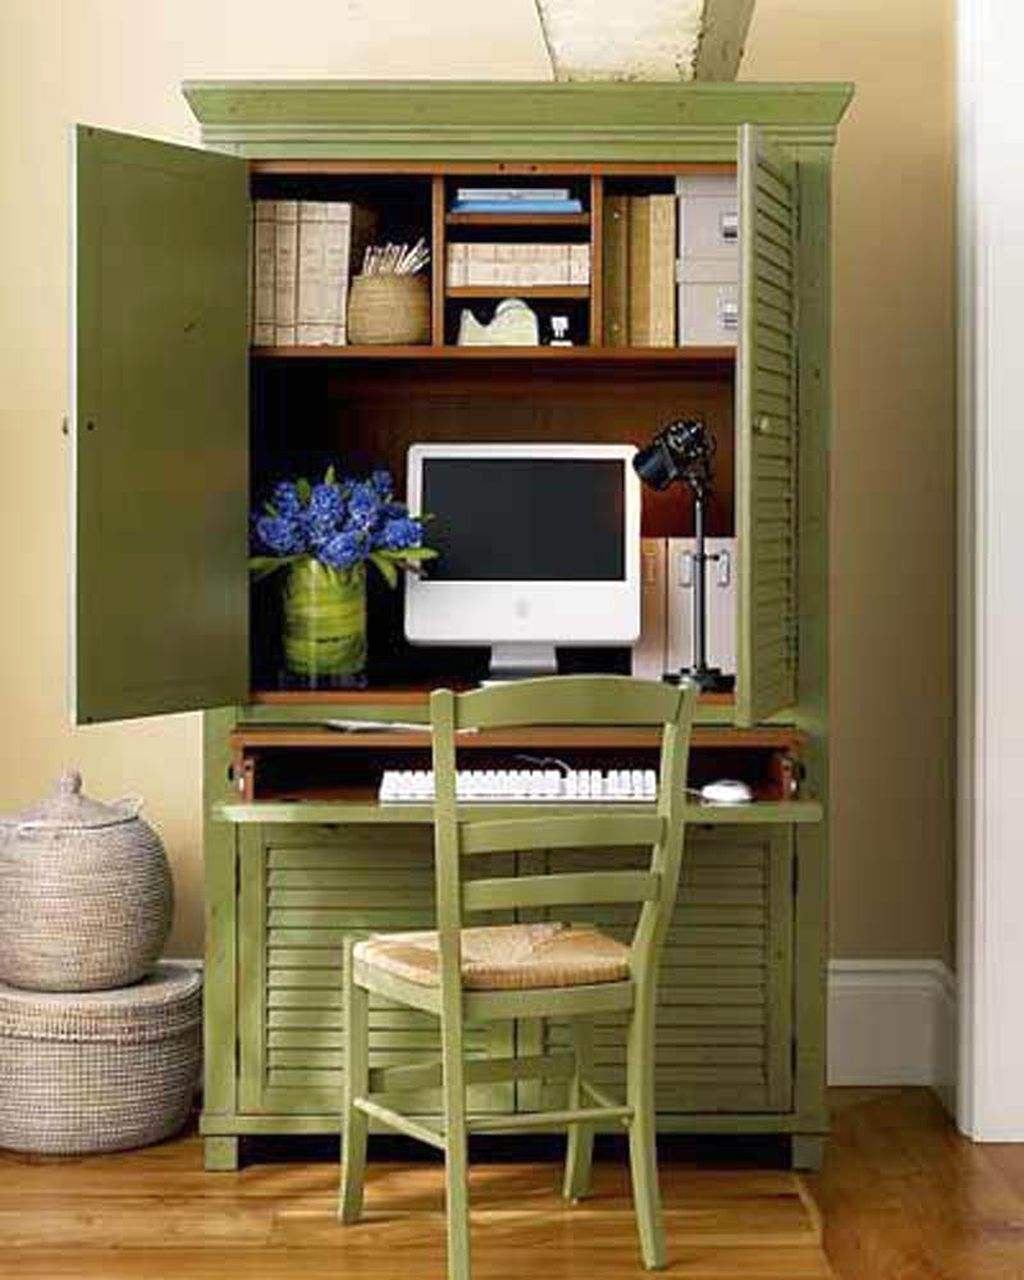 Home Design Ideas For Small Spaces: Green Cupboard Home Office Design Ideas For Small Spaces